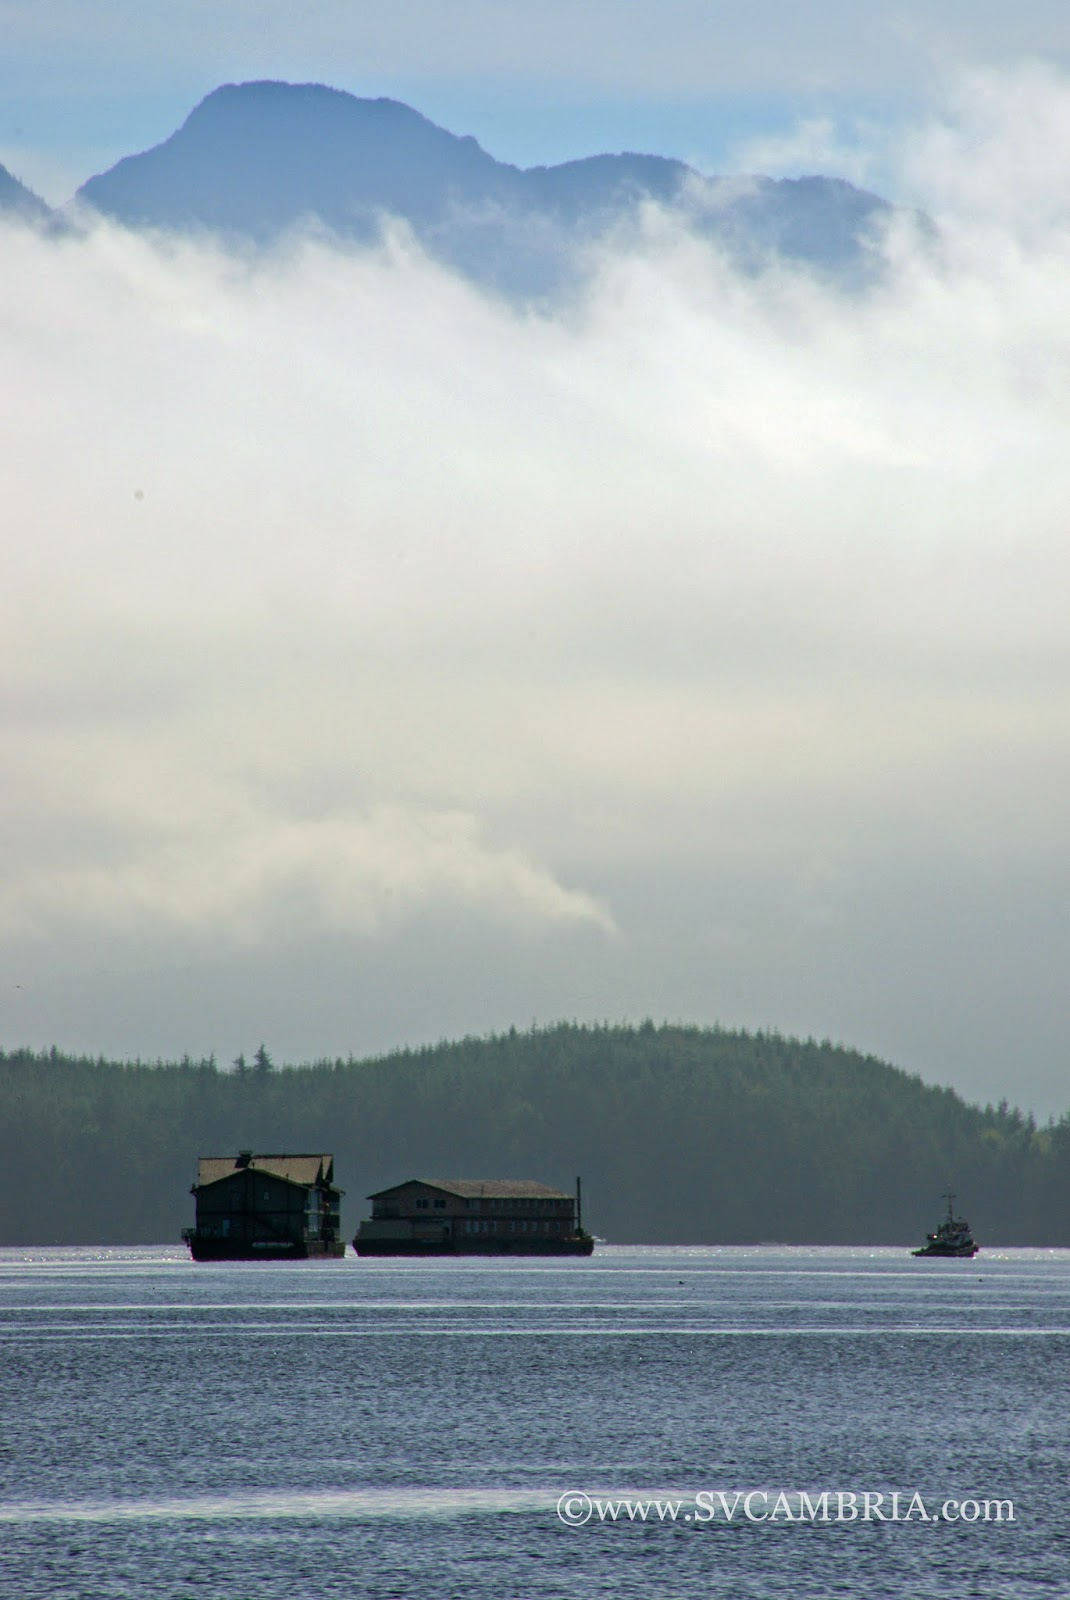 A tug towing two apartment buildings or lodges down Johnstone Strait.